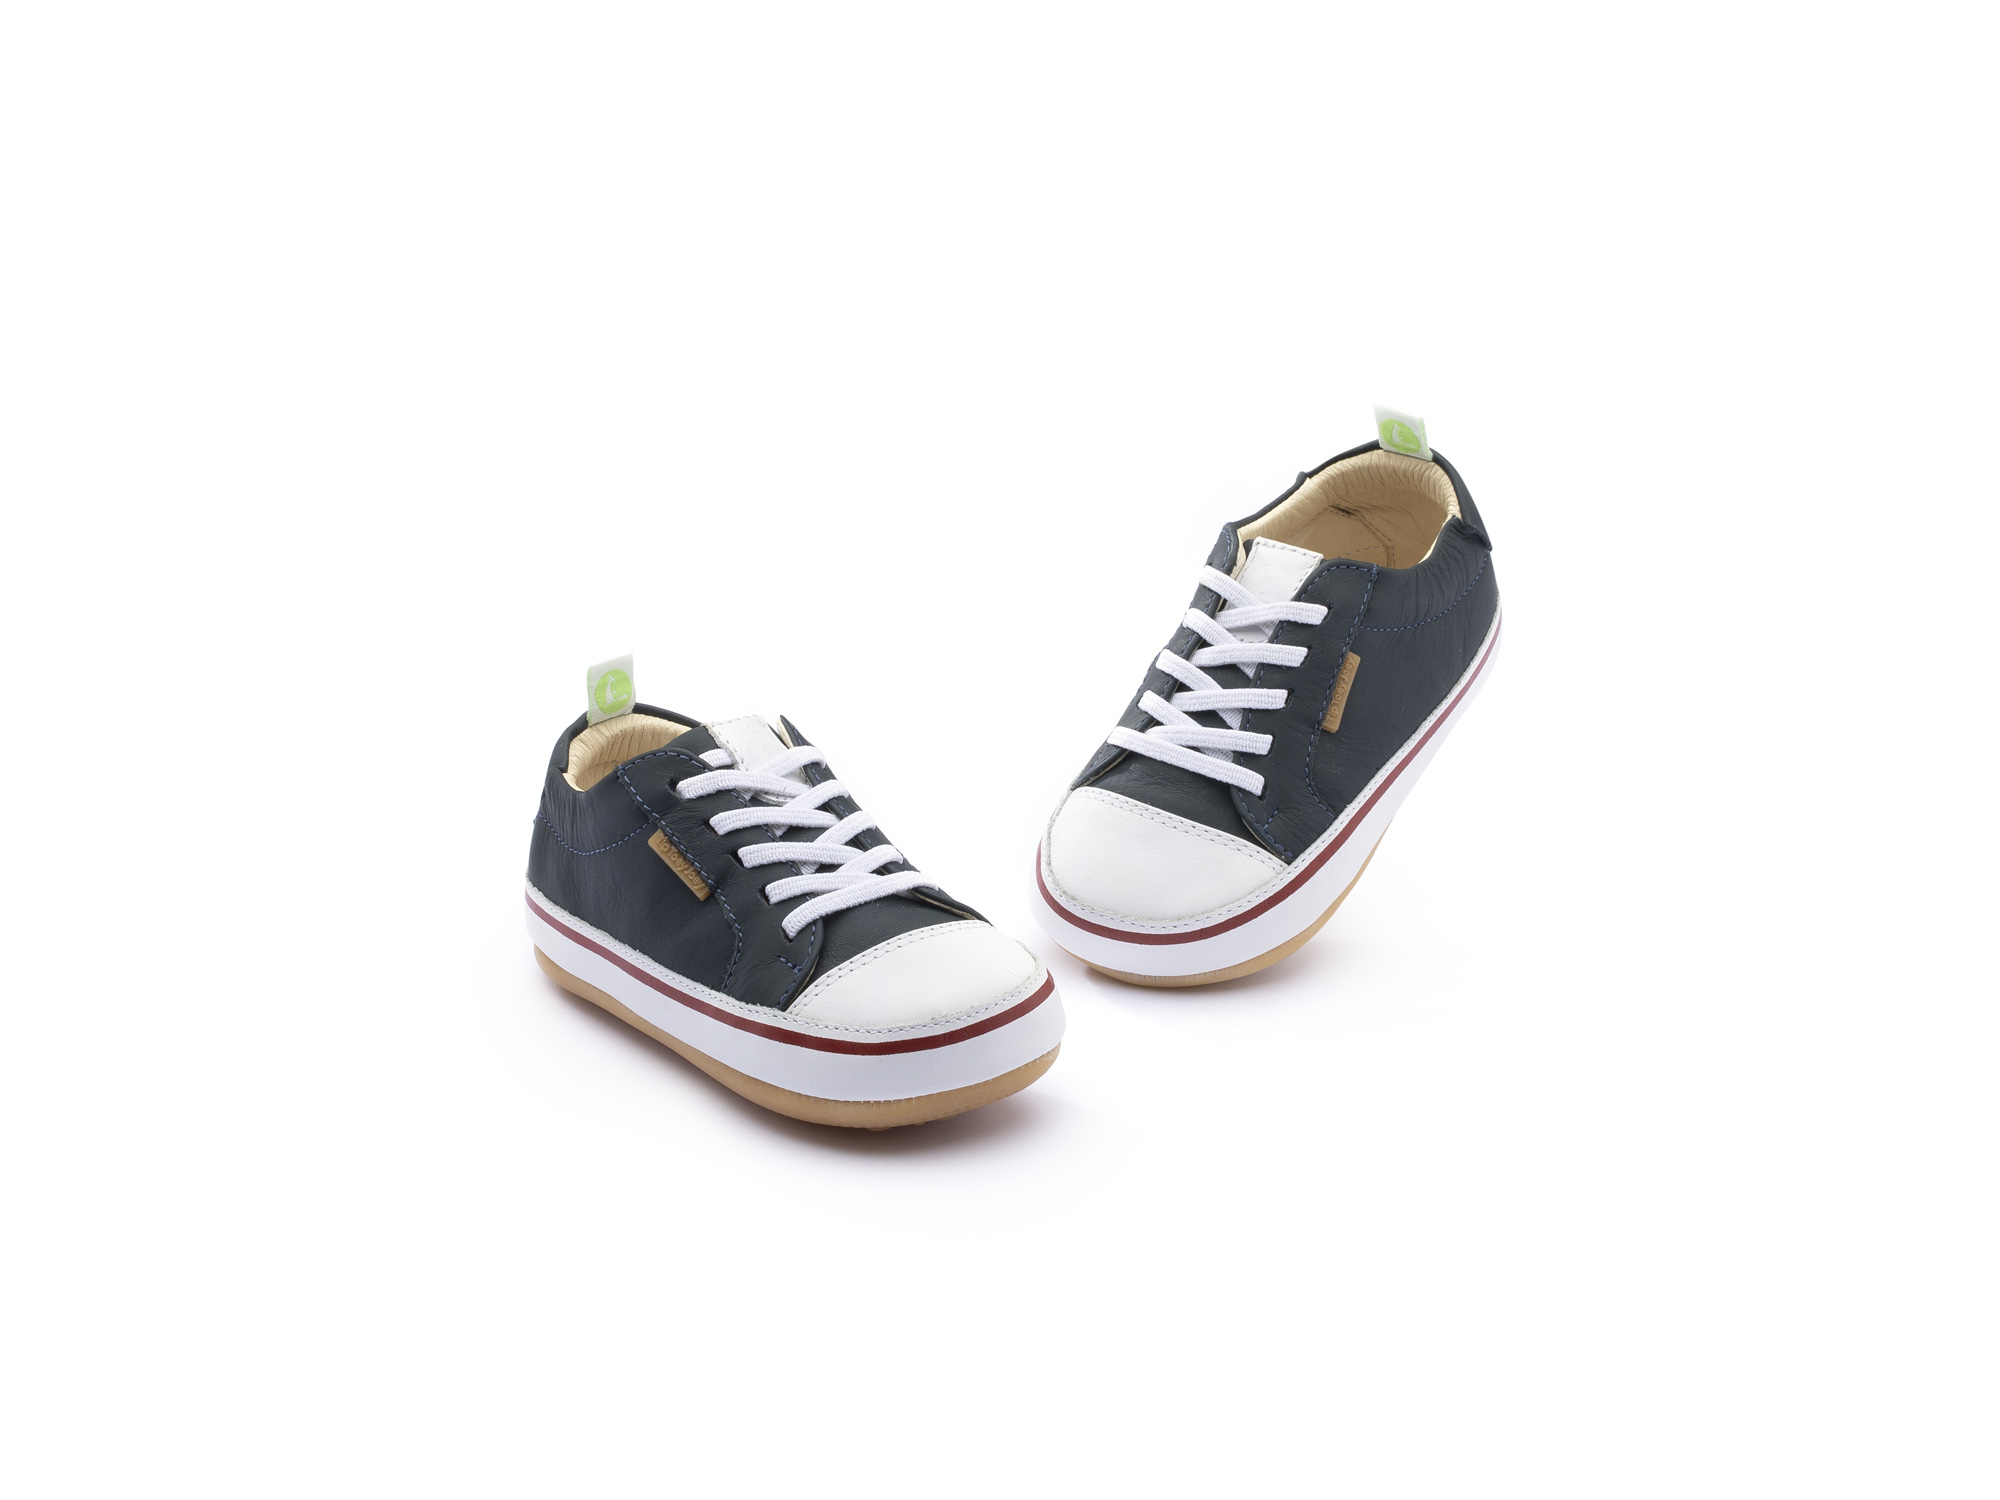 Sneaker Casual Funky Navy/ White Baby 0 à 2 anos - 3